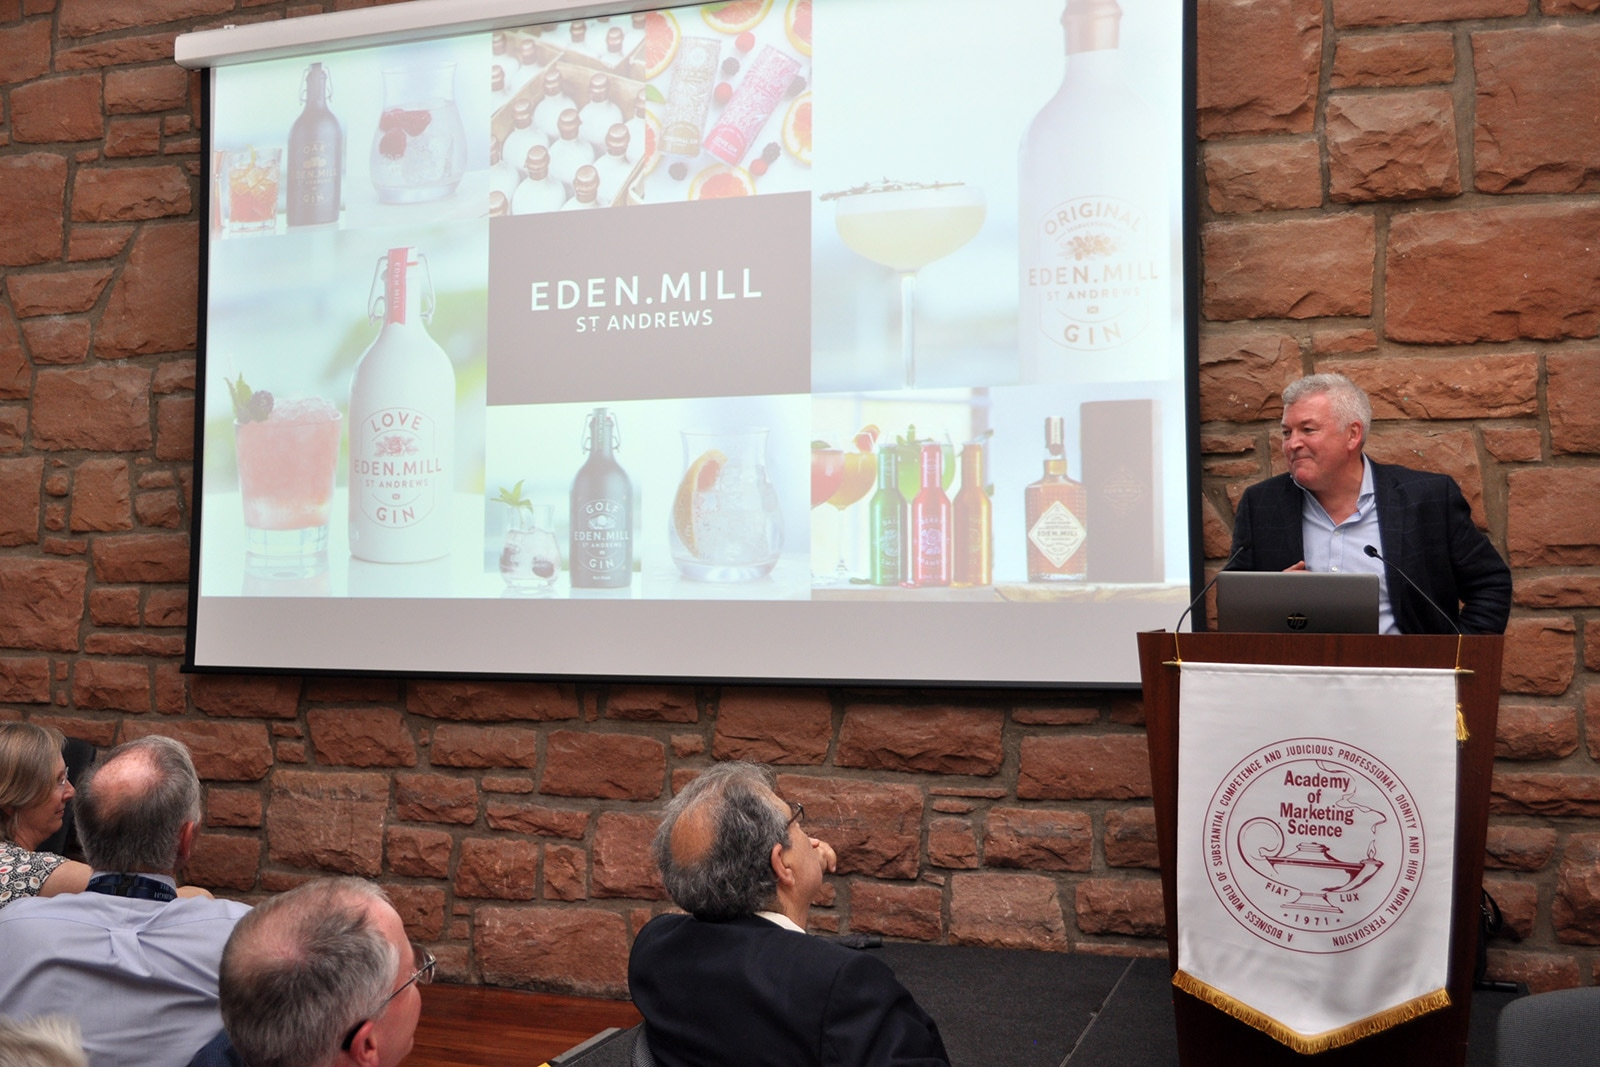 Paul Miller of Eden Mill